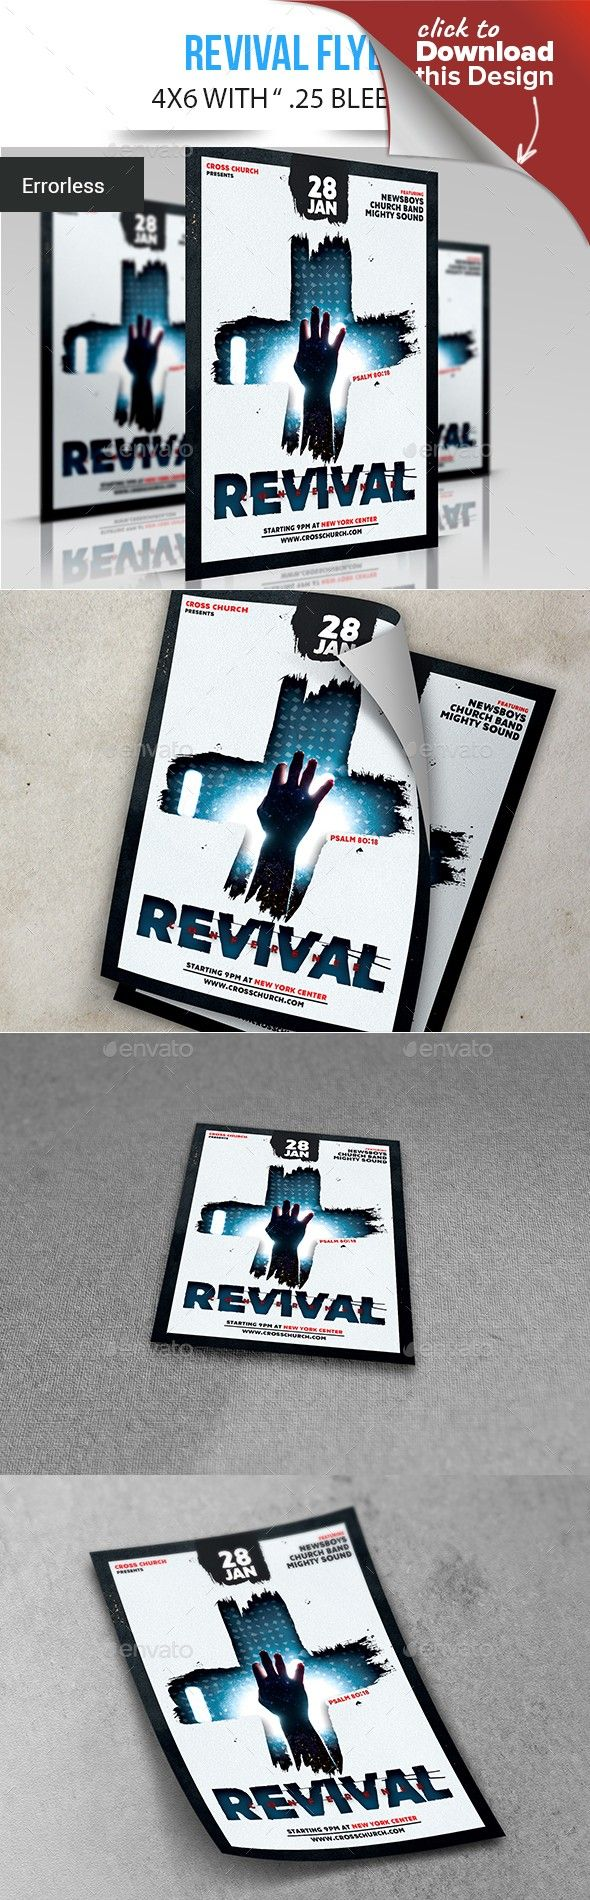 Revival | Flyer layout, Print fonts and Template